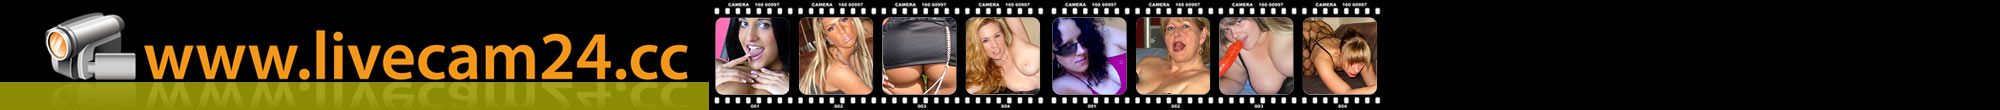 HotLilli, 37 Jahre, BH: 75 B - camgirl video -  - Video Web Cams Live Sex Chat von heissen Girls